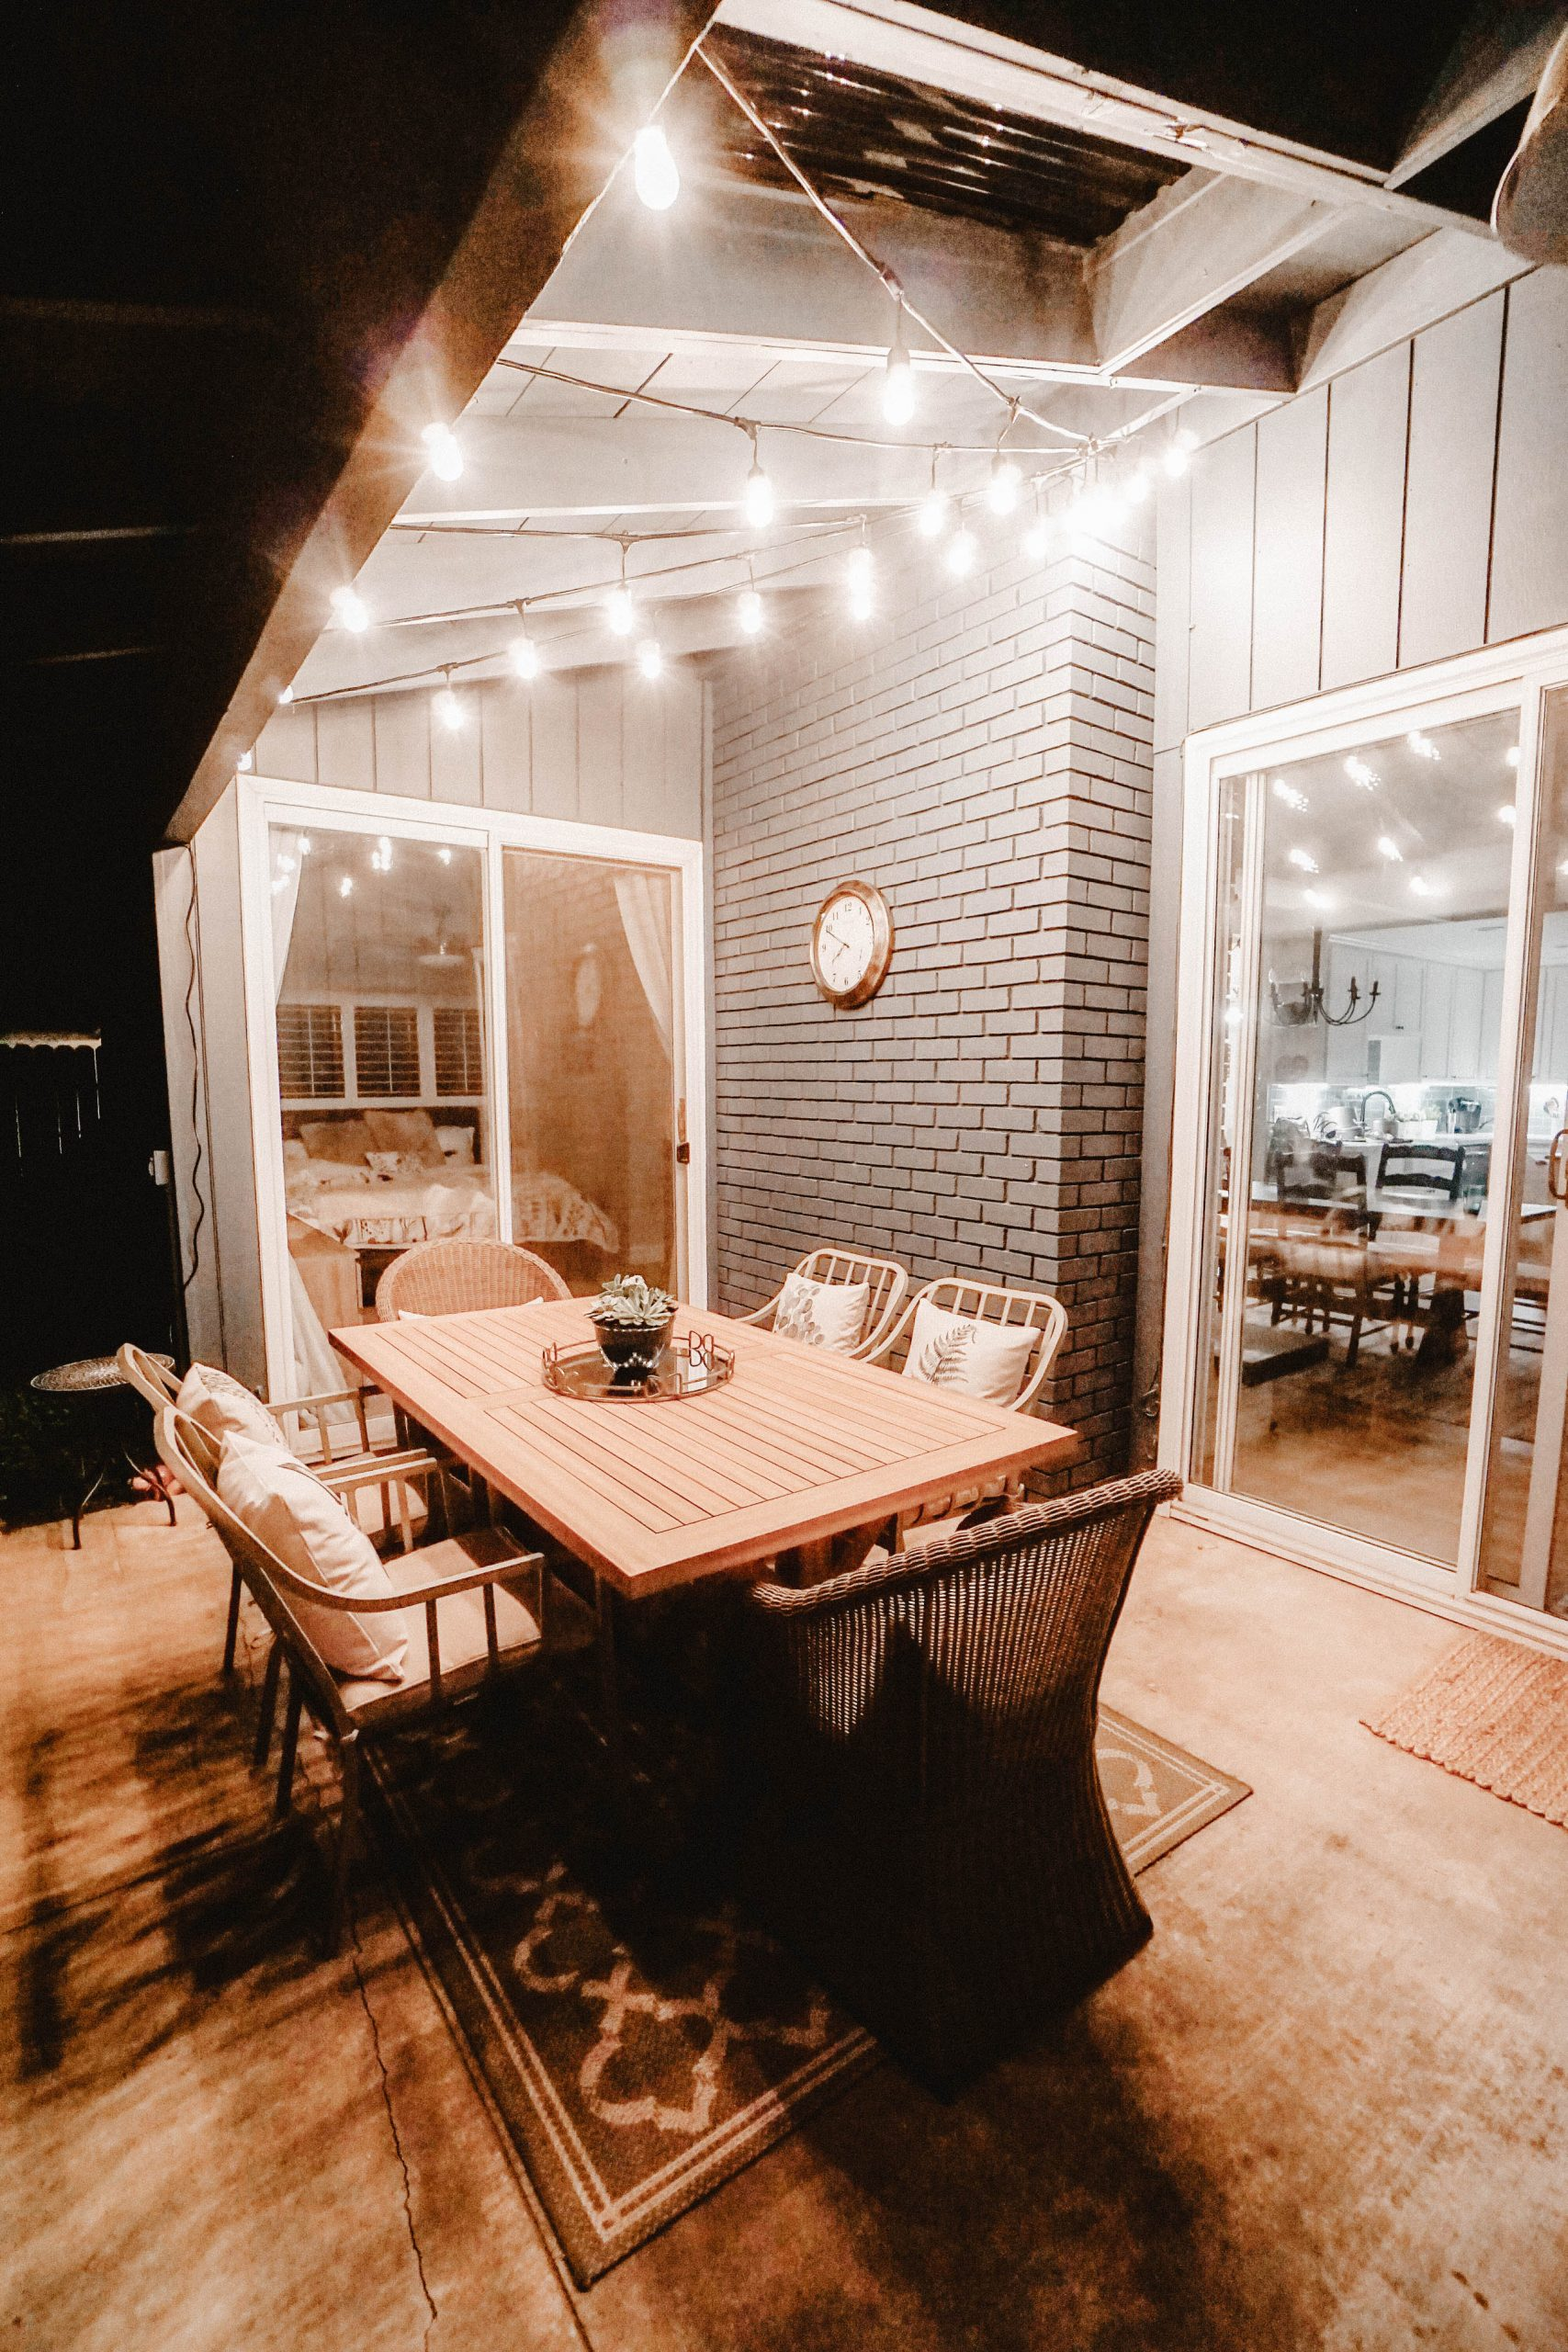 Outdoor lighting over a table on a deck